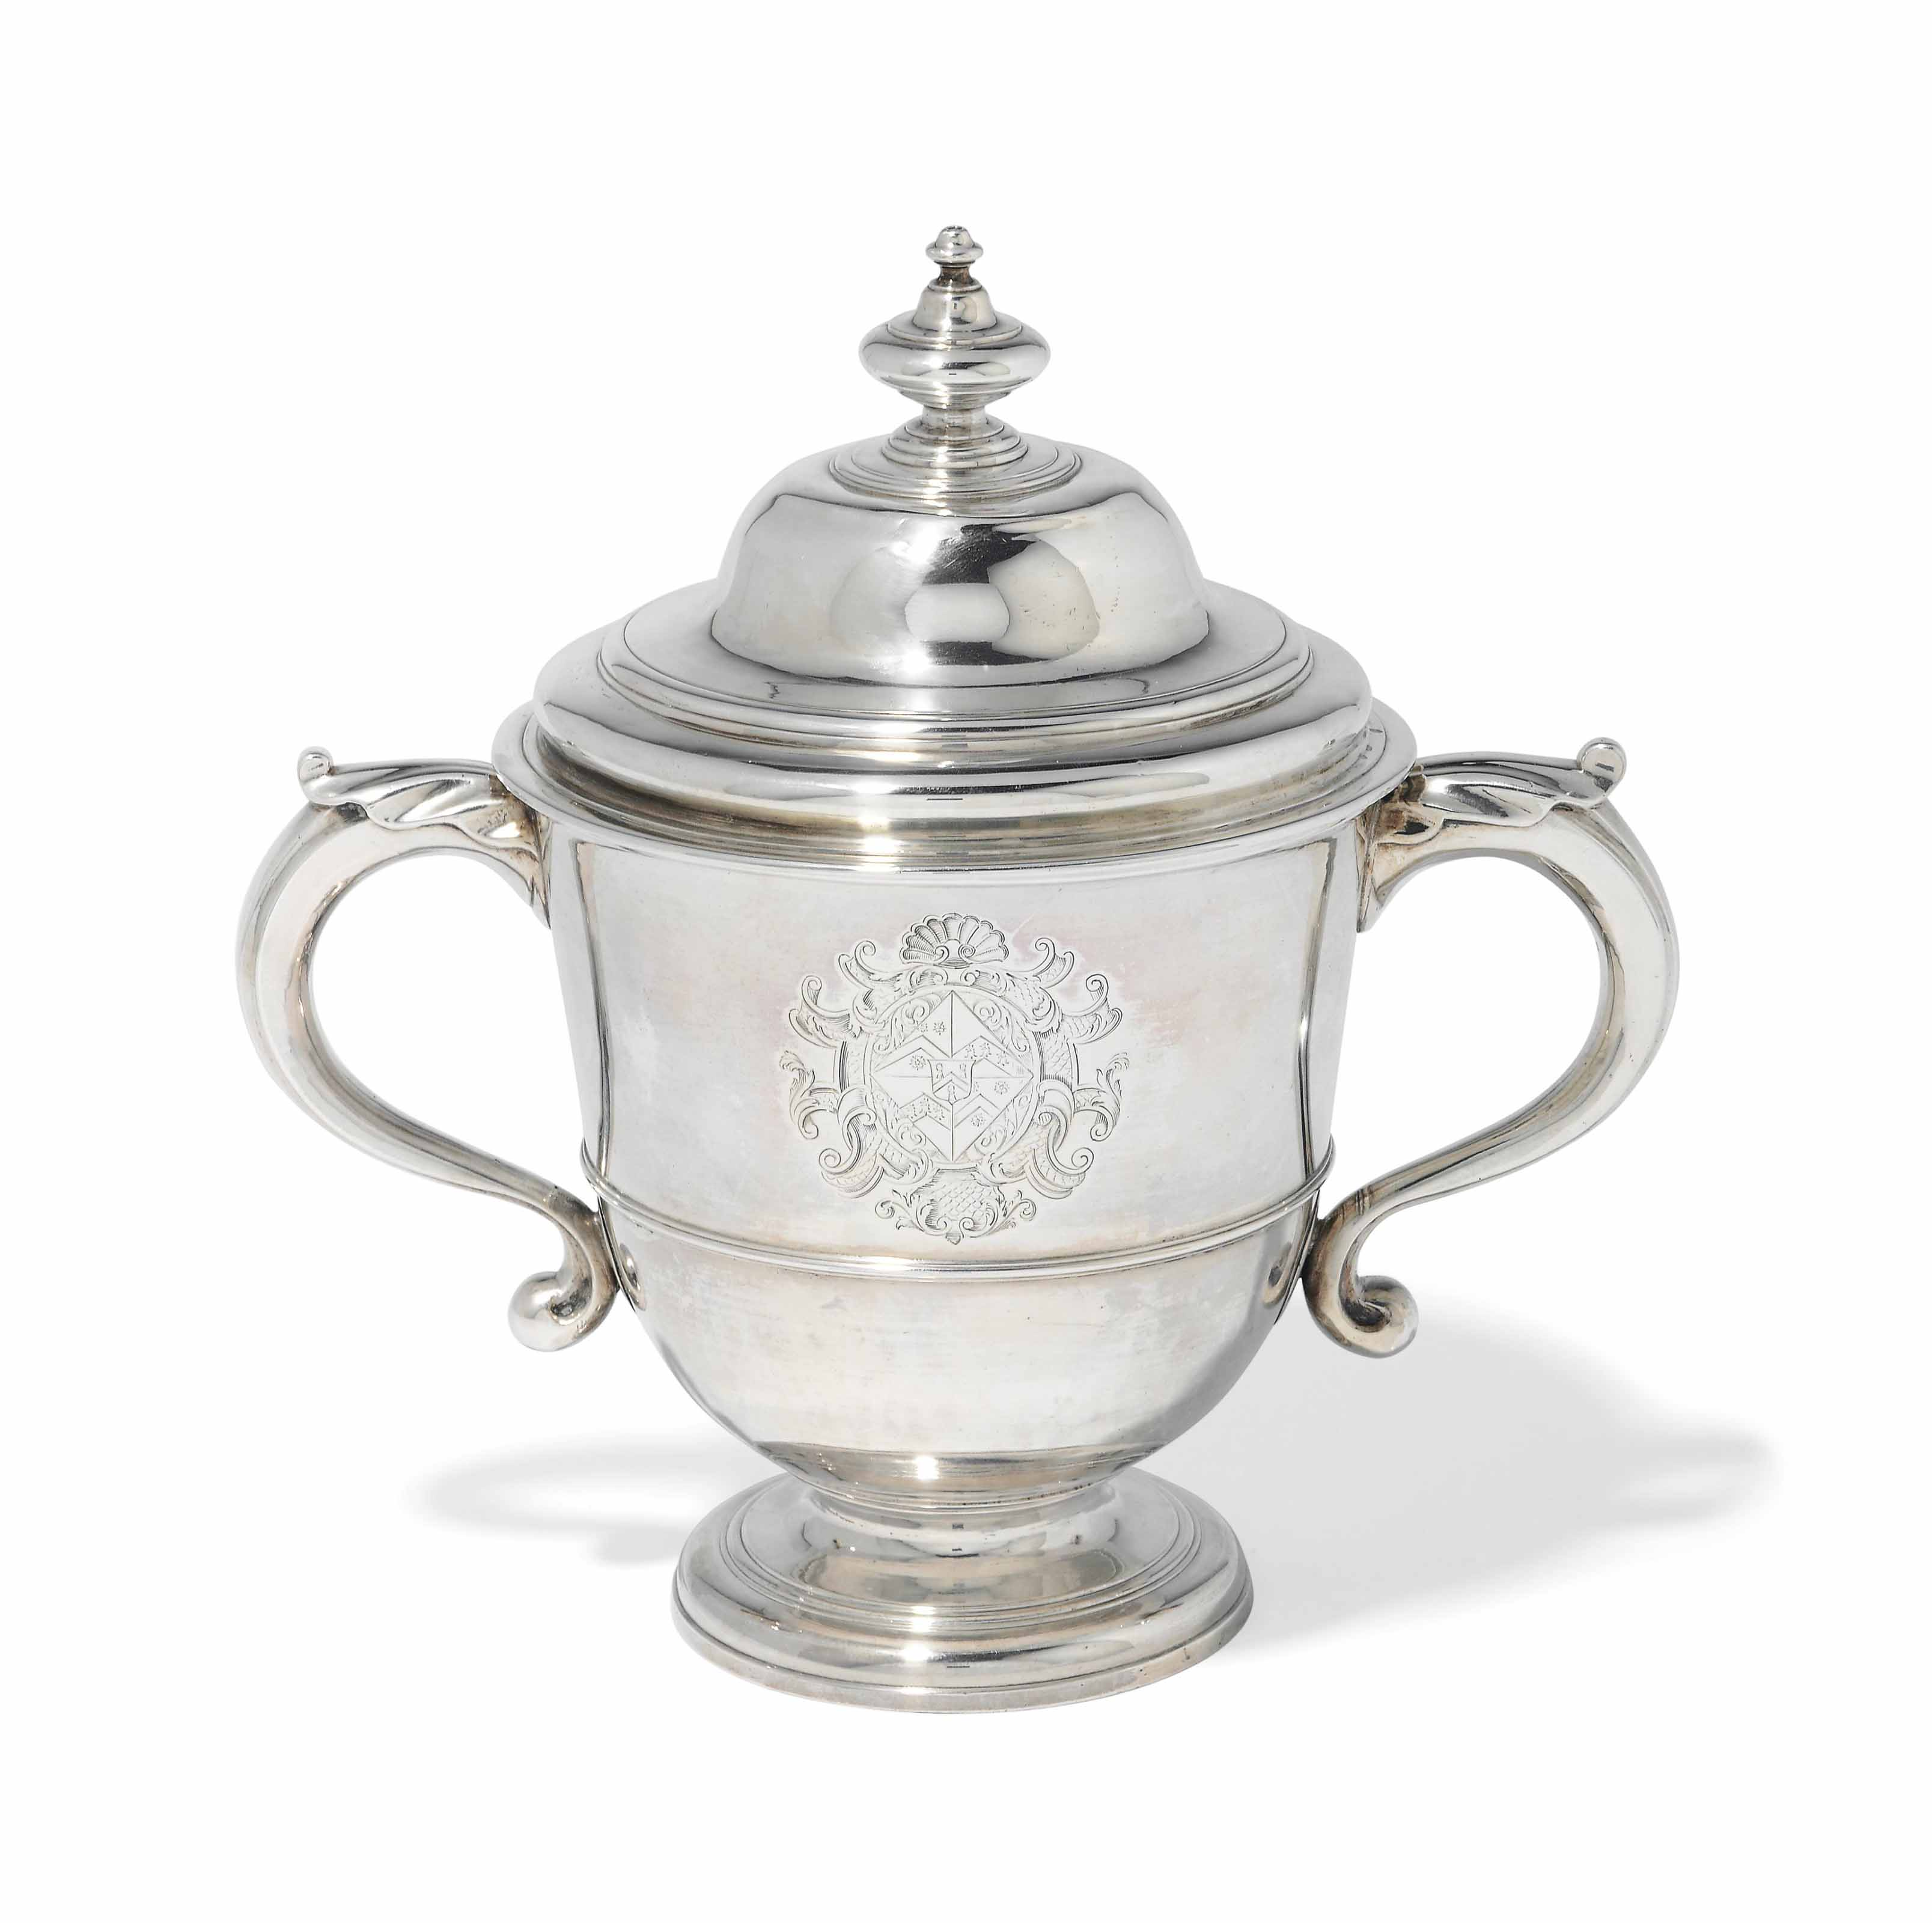 A GEORGE I SILVER CUP AND COVER